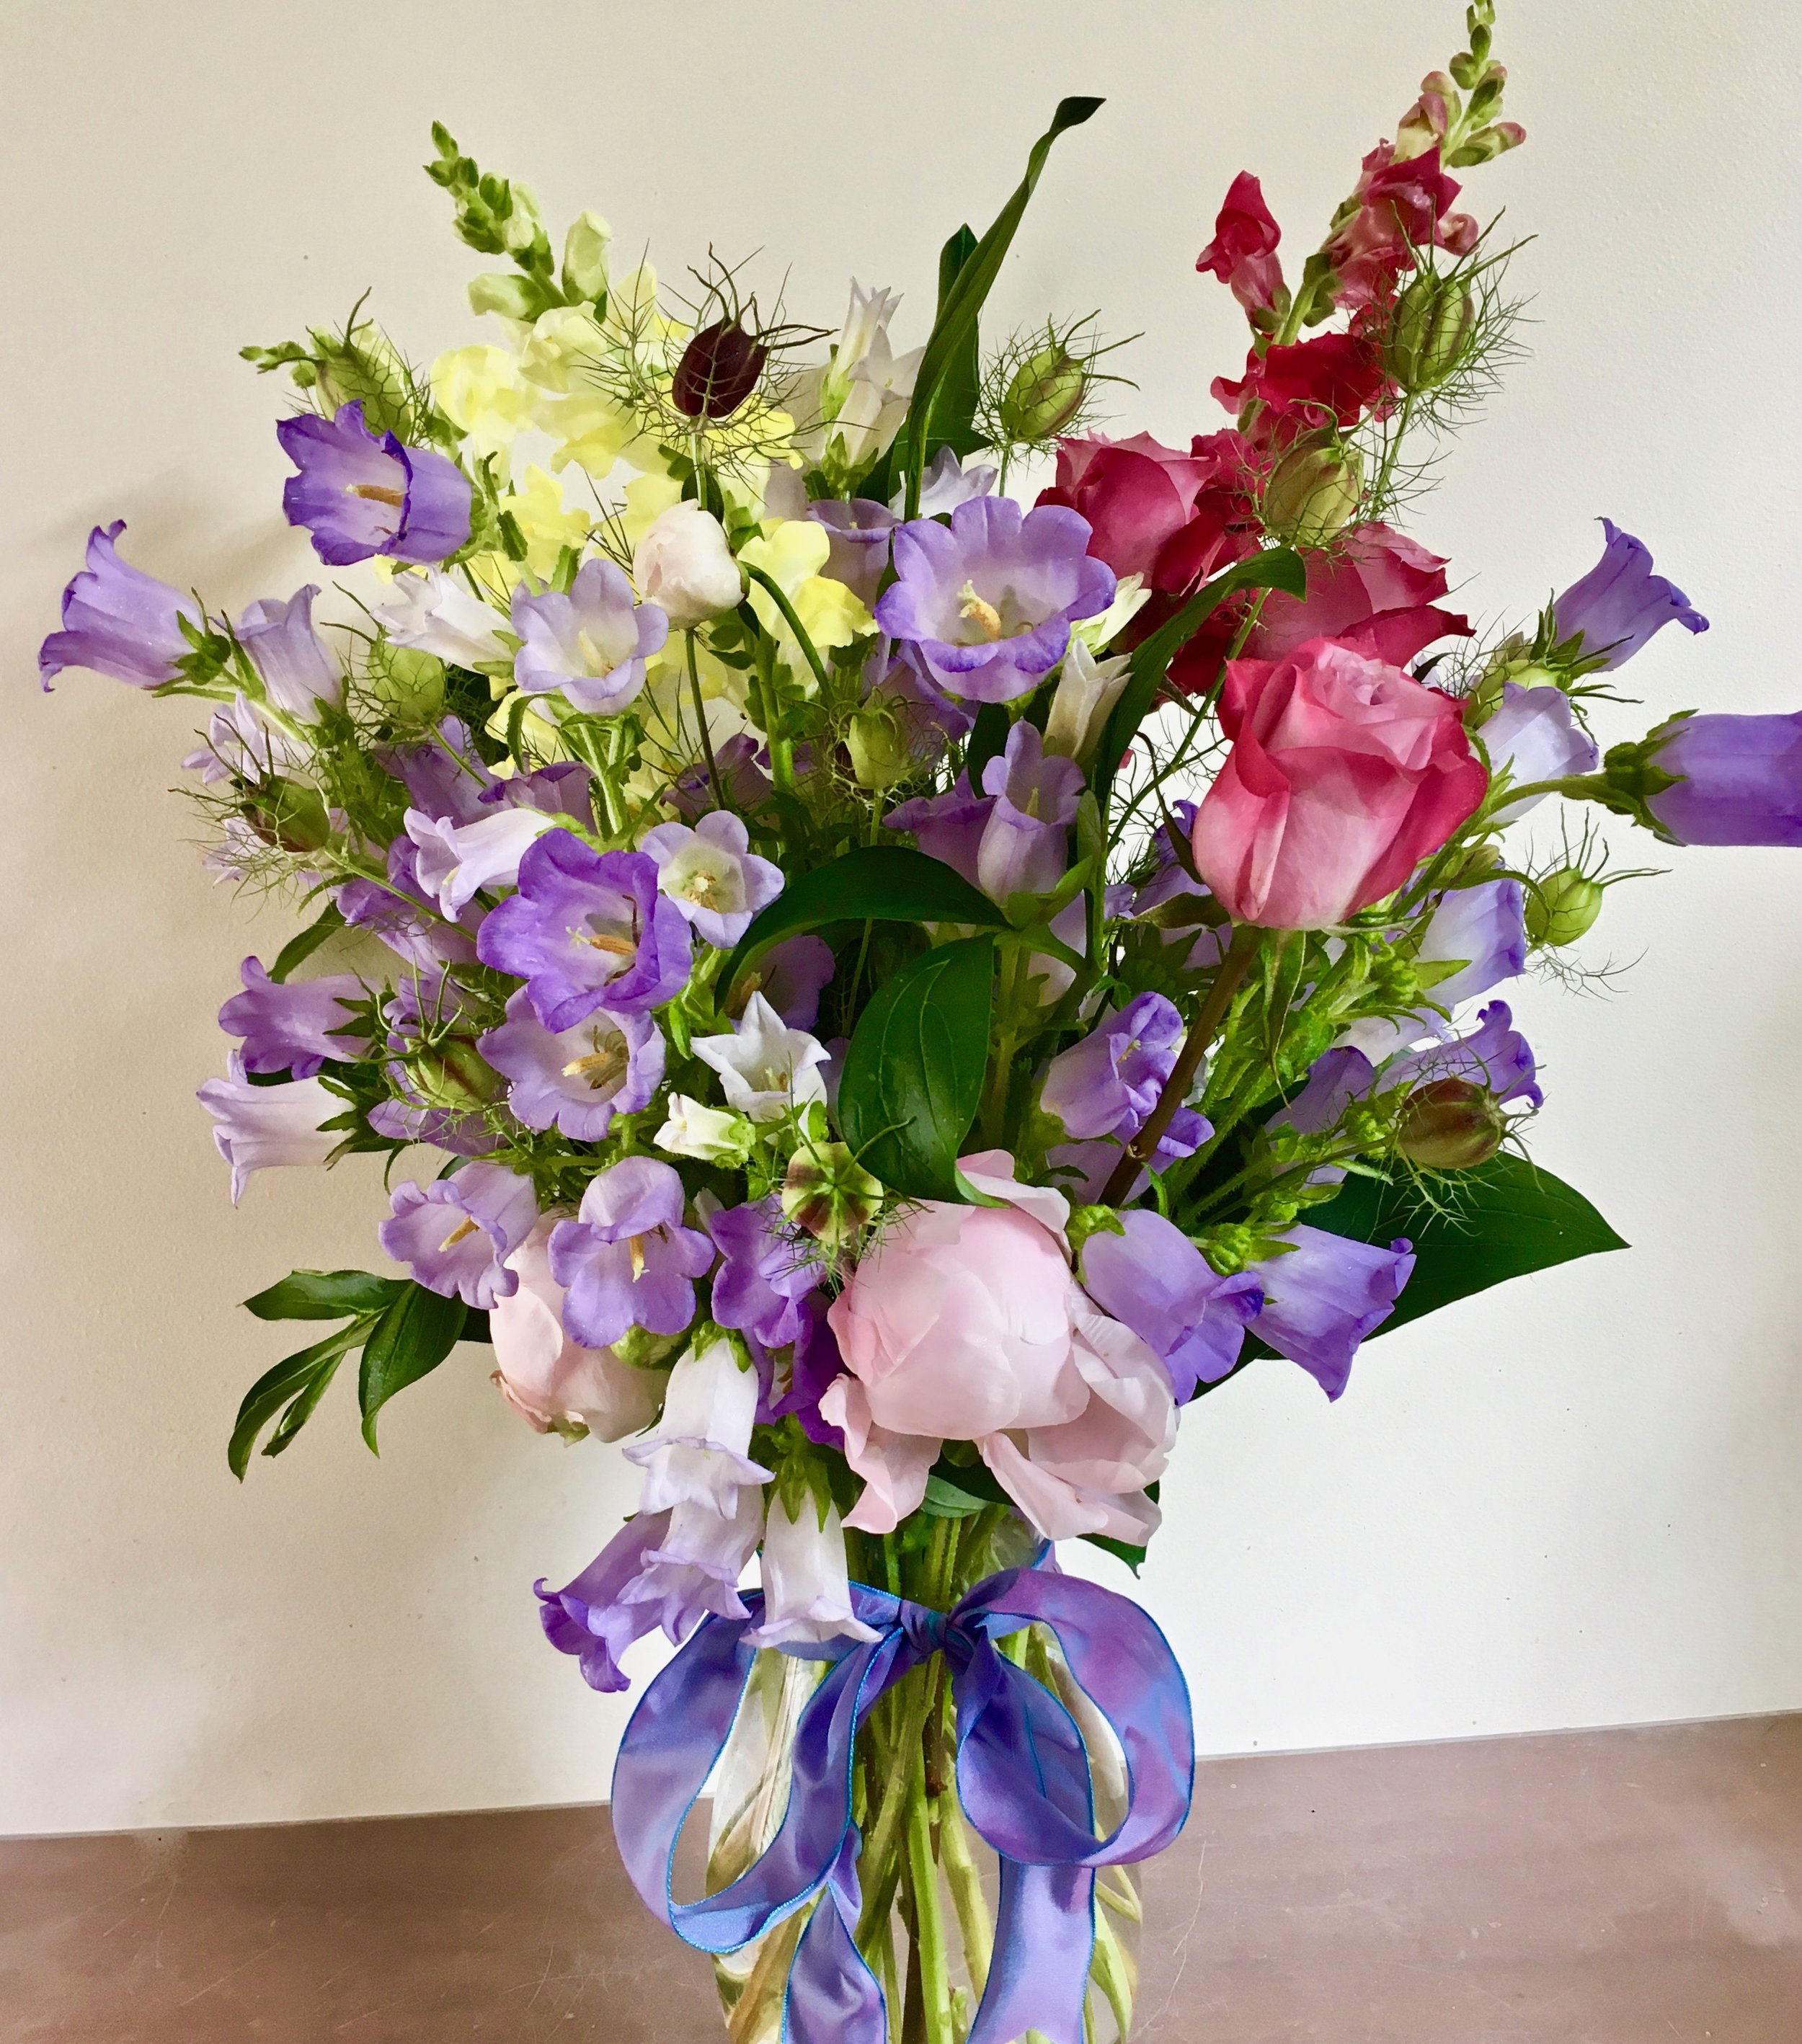 TALL SPRING FLOWERS   such as bellflowers, snapdragons, lisianthus and more. Large 9 inch vase, $65. Small 7 inch vase, $45.